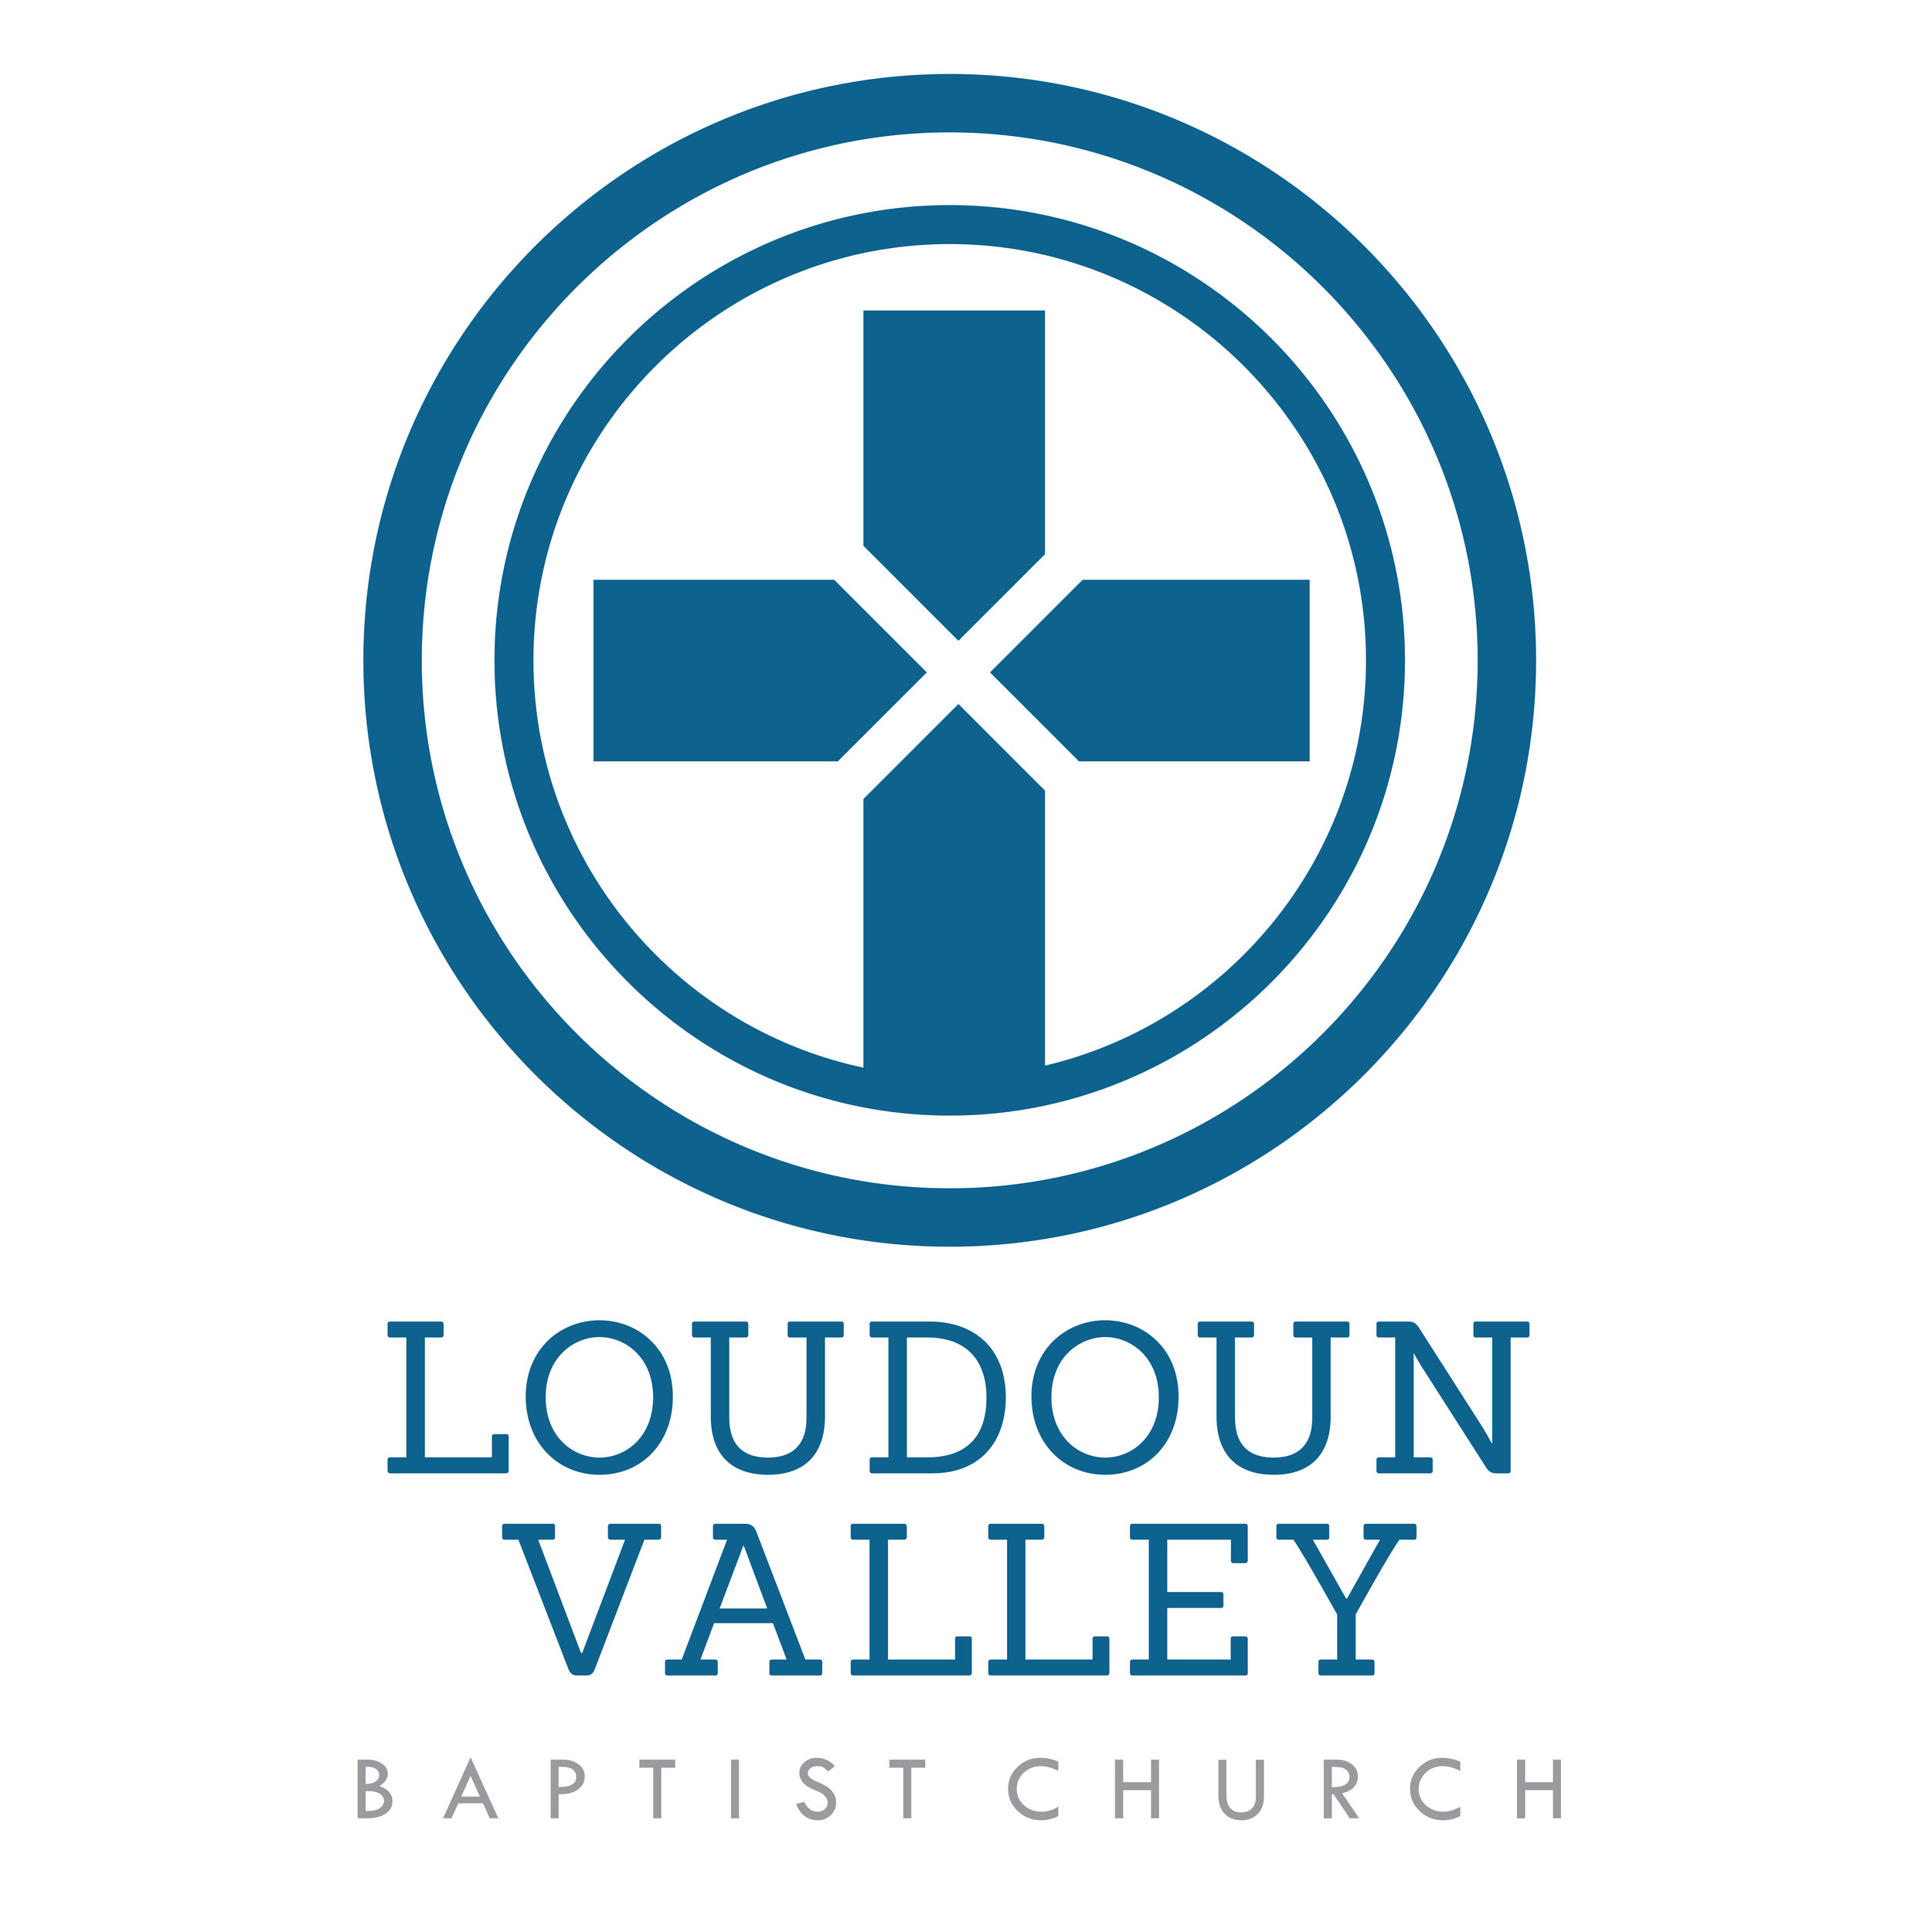 Website:  http://www.loudounvalley.org  Email:  info@loudounvalley.org